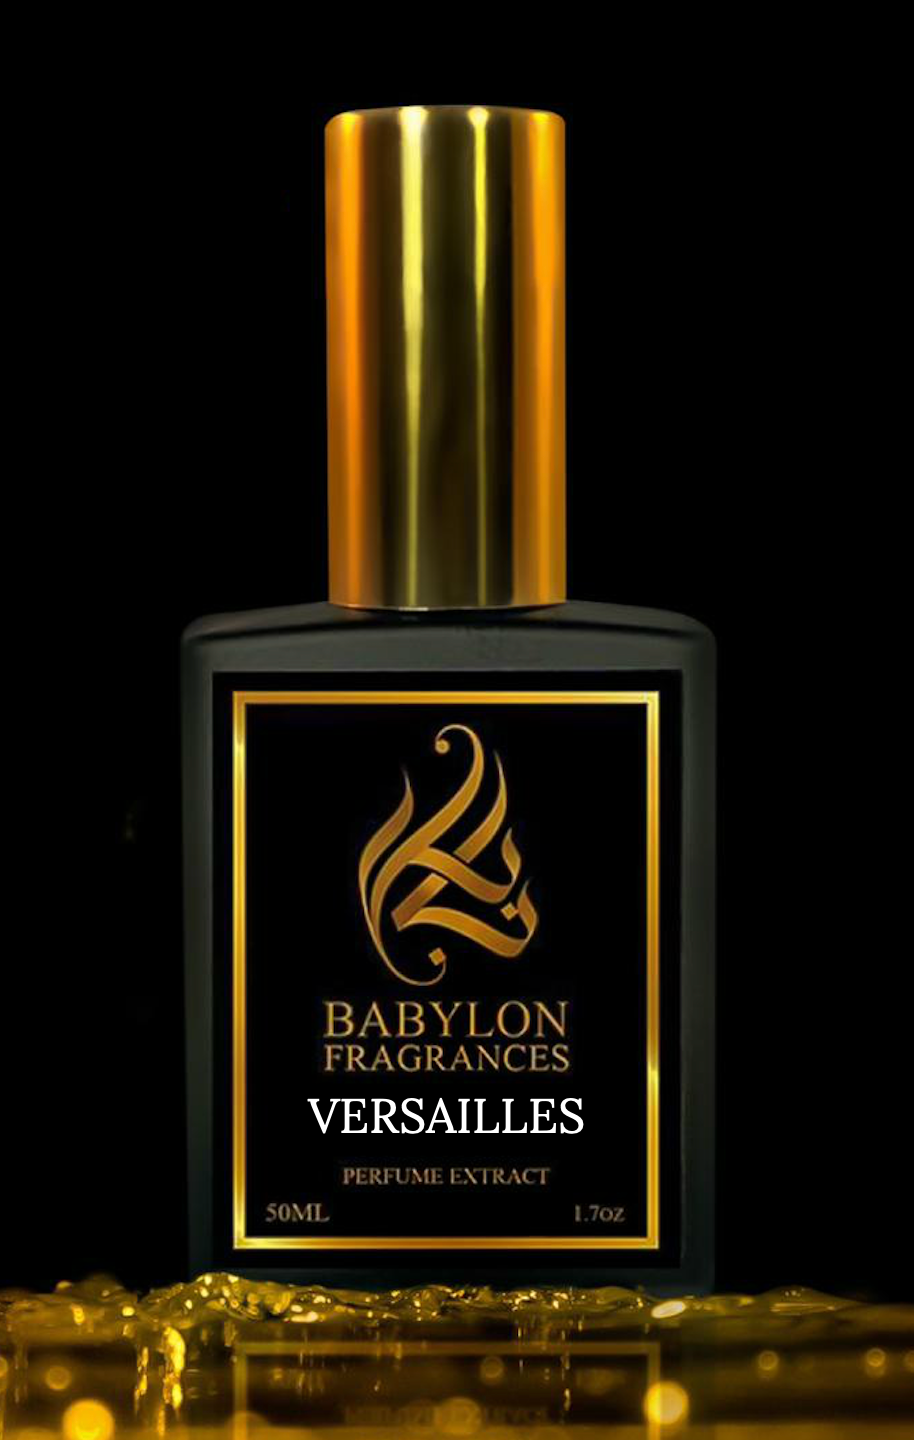 Versailles - inspired by Tom Ford's Neroli Portofino